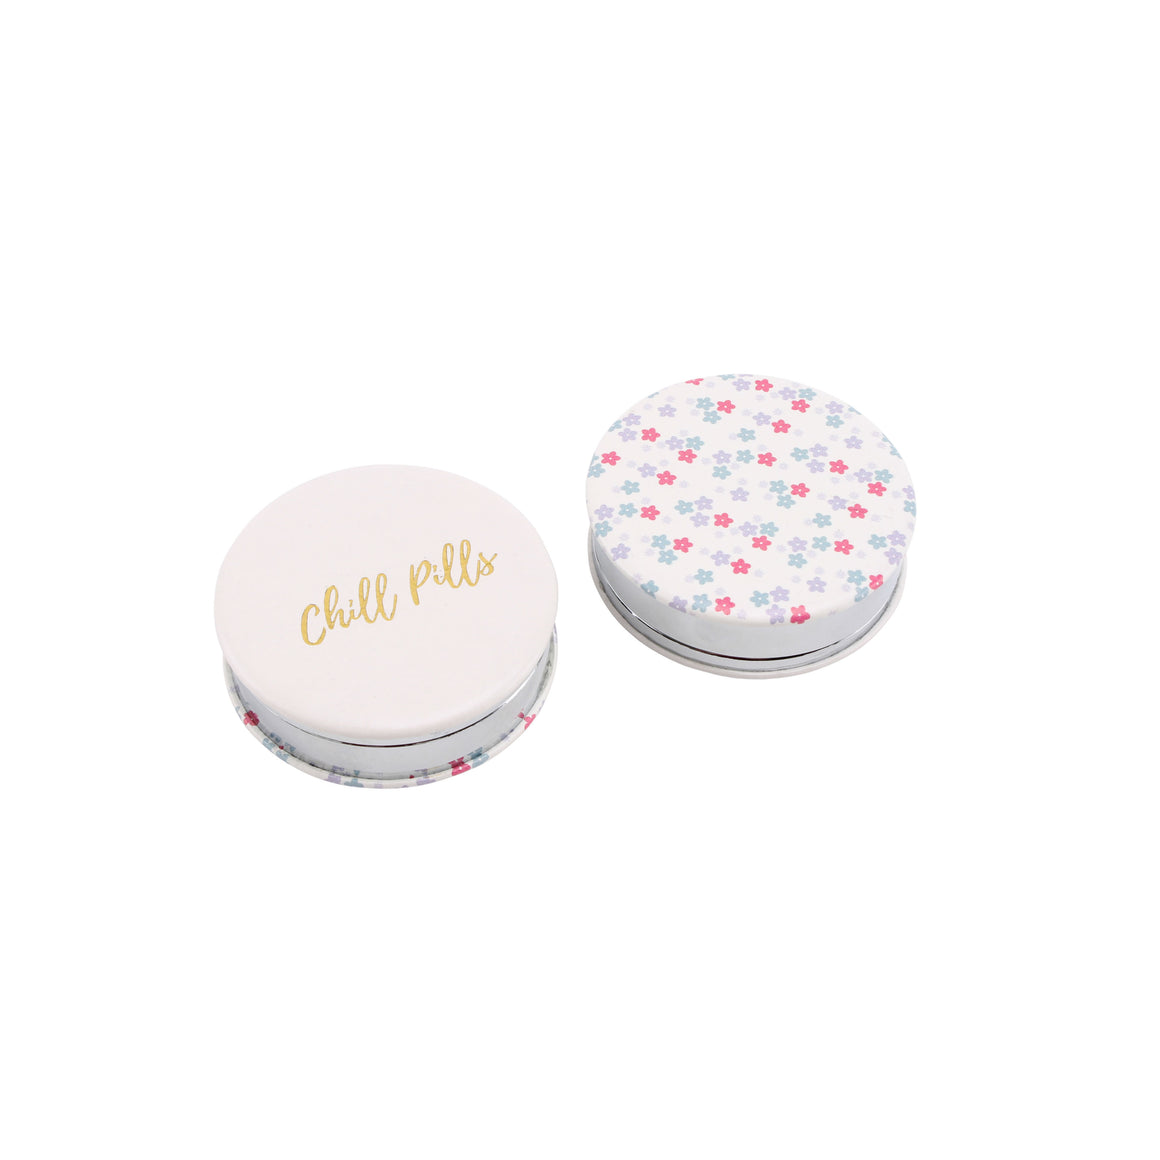 Willow & Rose 'Chill Pills' Pill Box